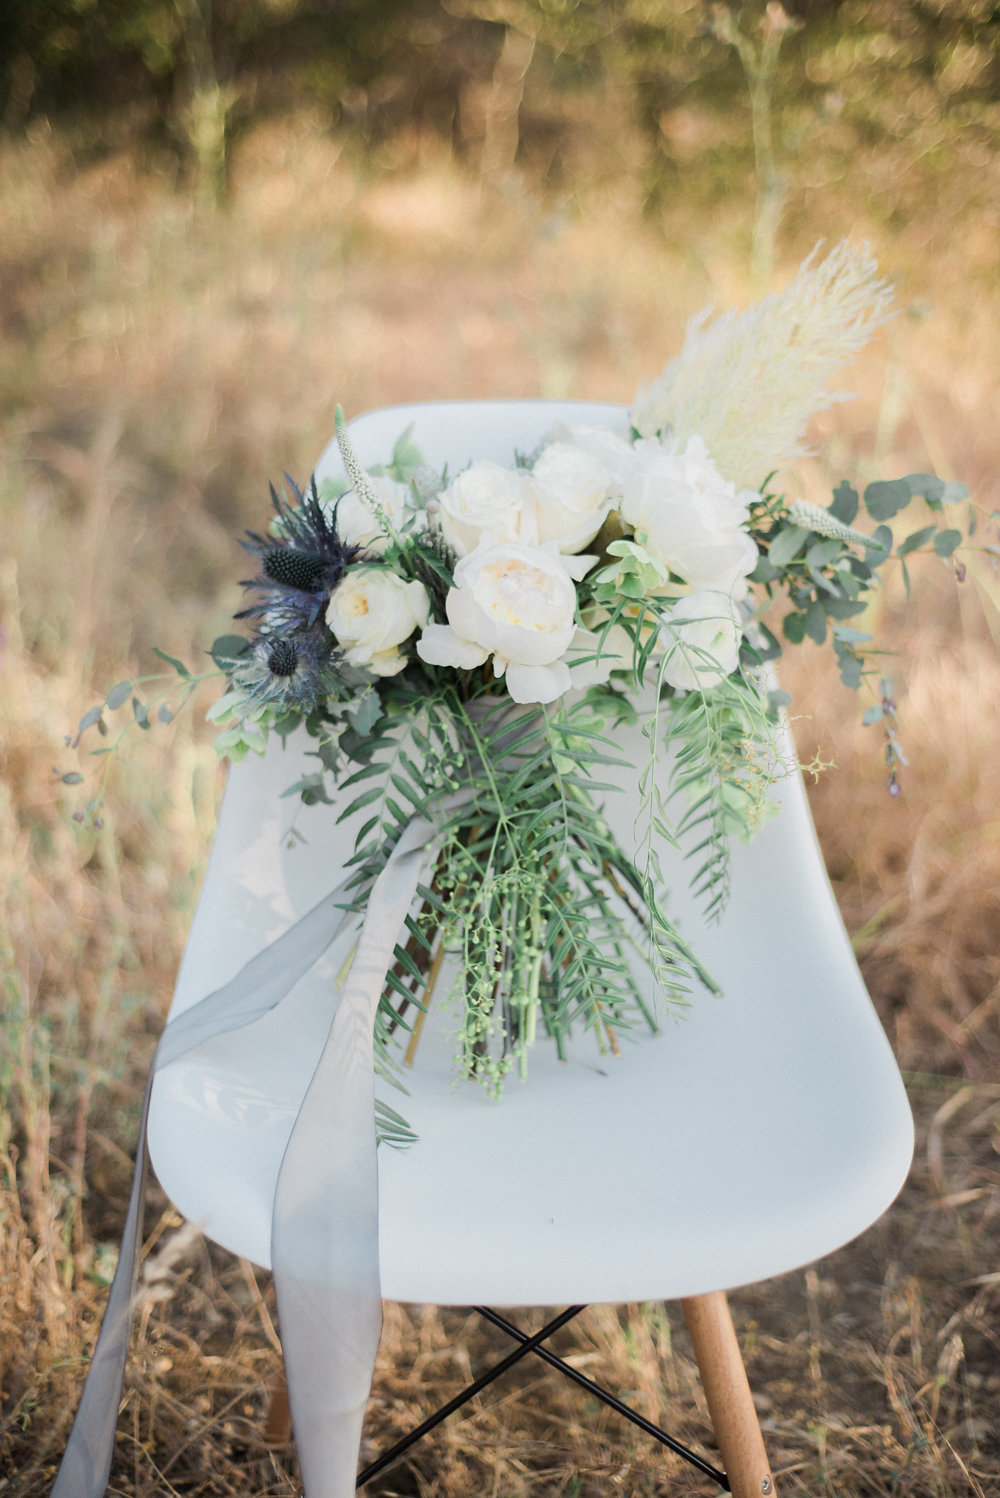 wedding bouquets - photo by Anya Kernes Photography http://ruffledblog.com/organic-wedding-inspiration-with-shades-of-blue